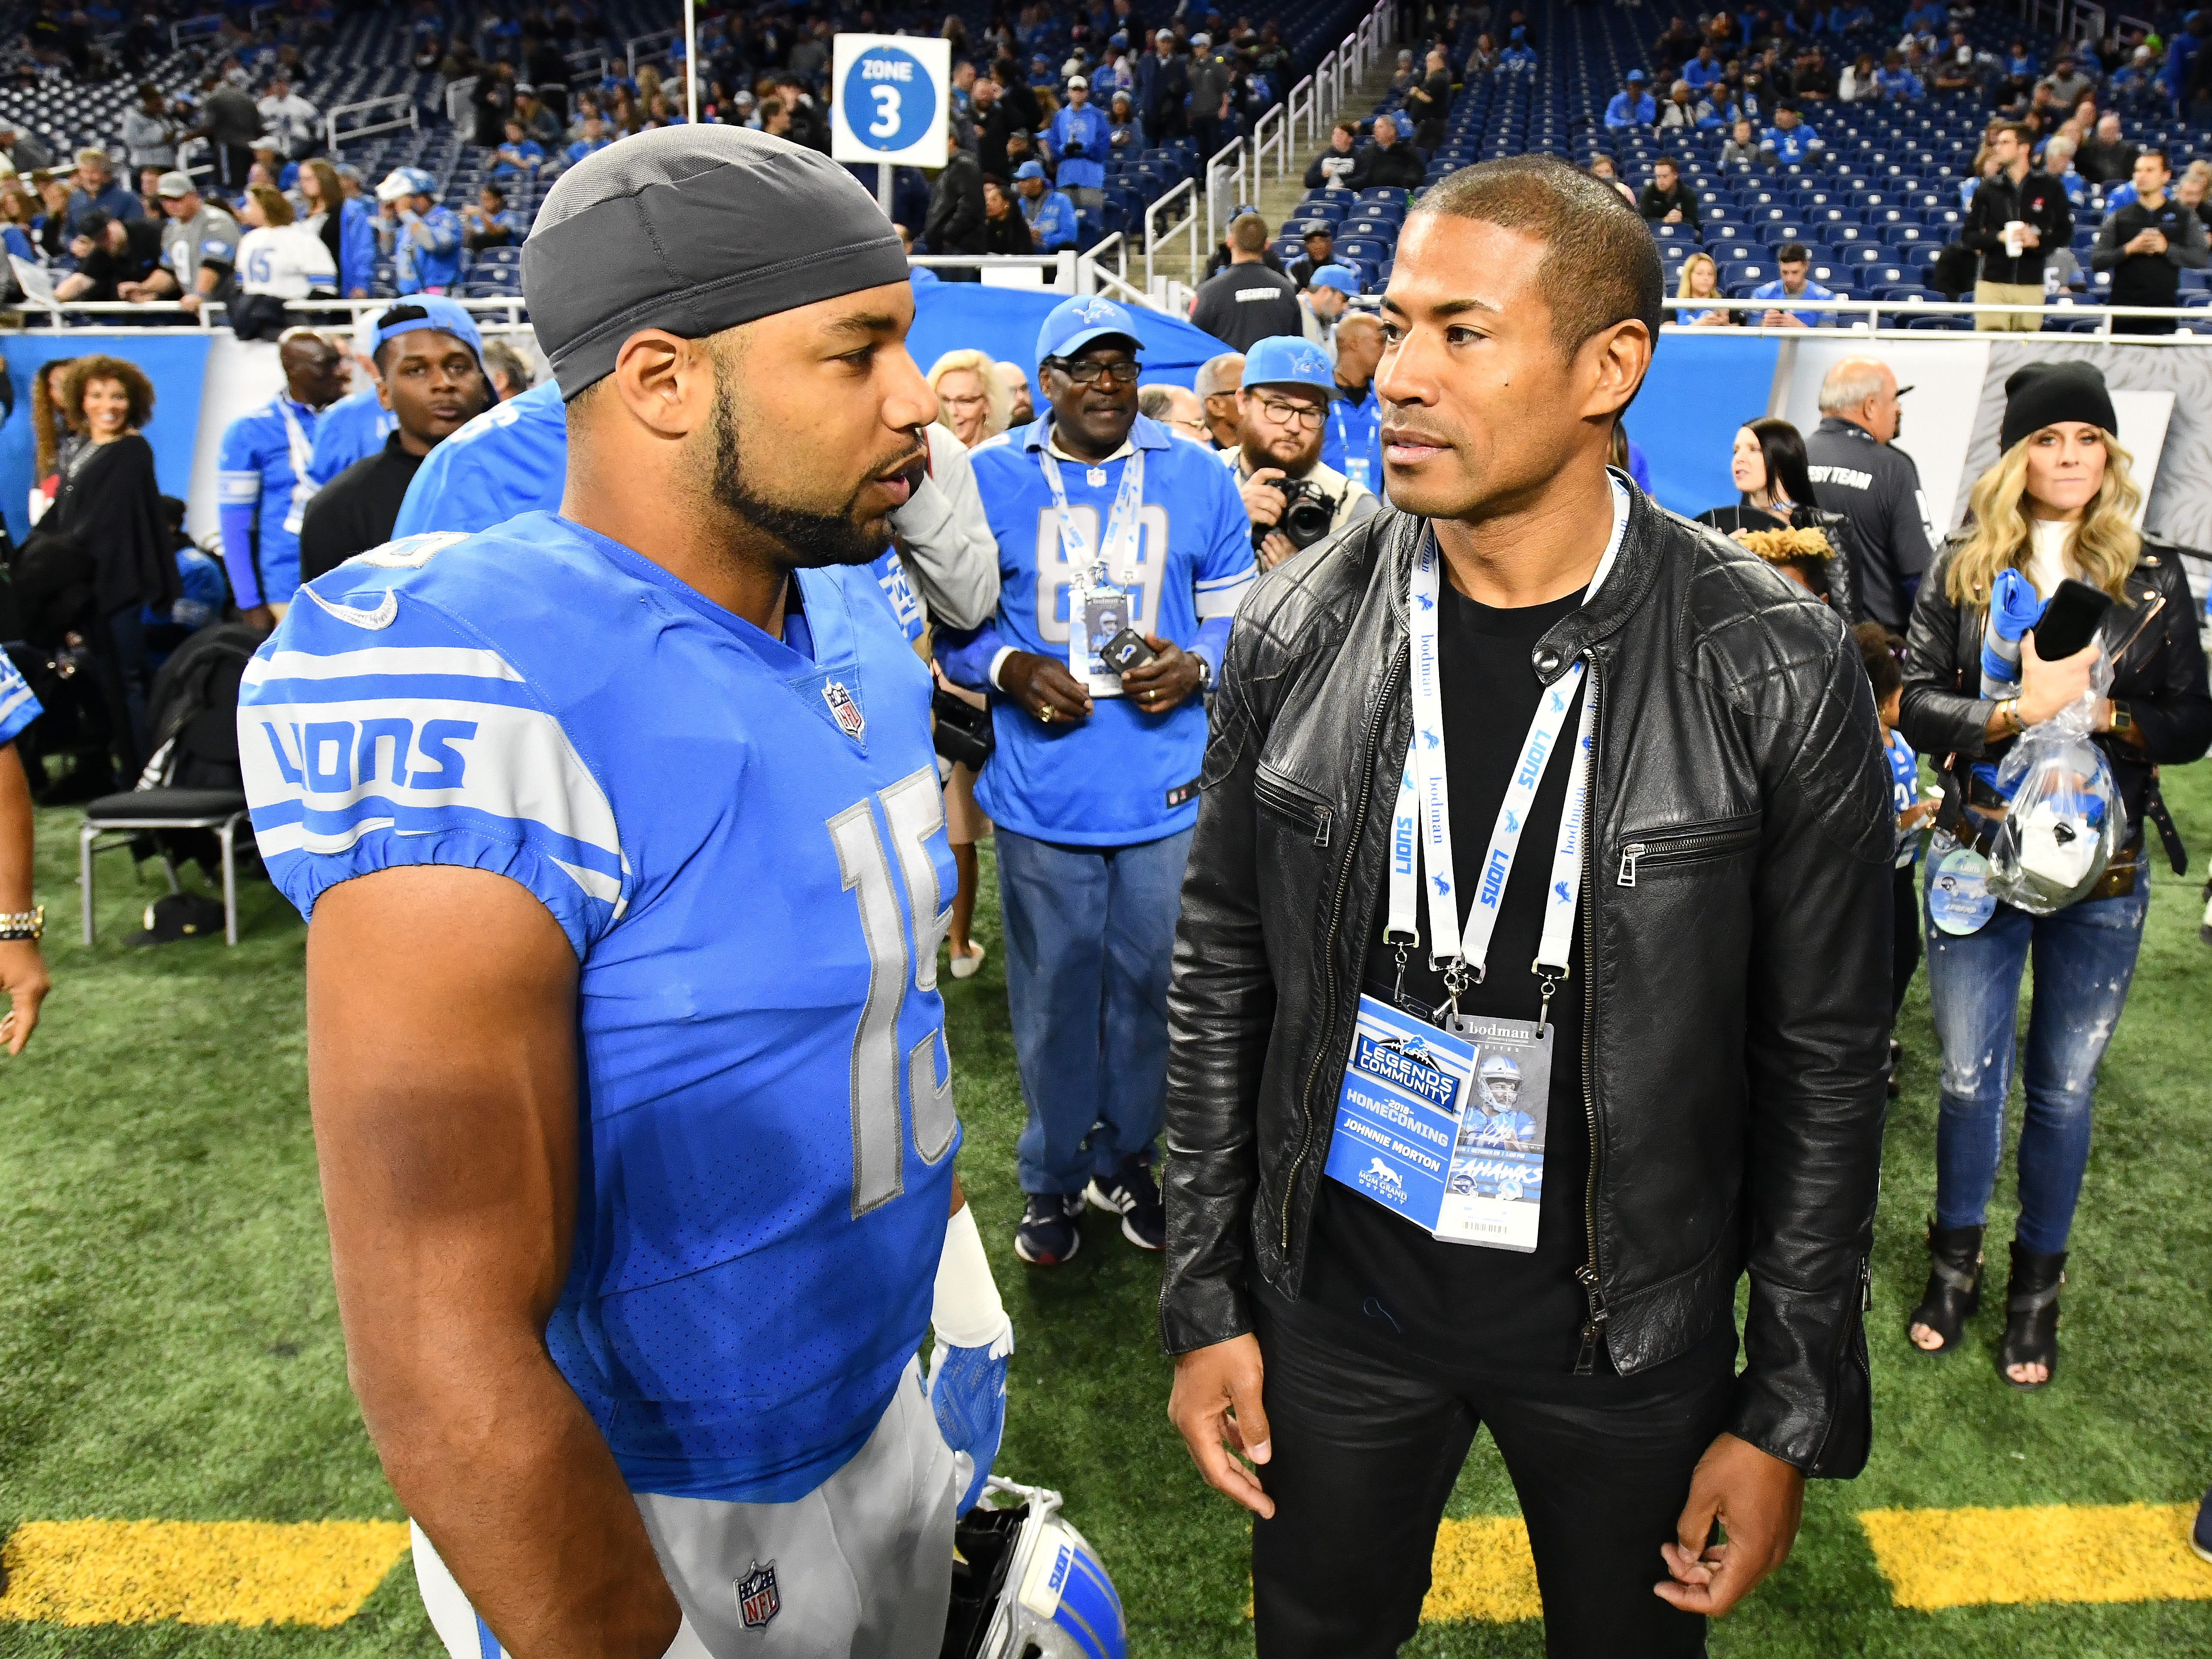 Lions wide receiver Golden Tate and former Lions wide receiver Johnny Morton talk on the field before the game.